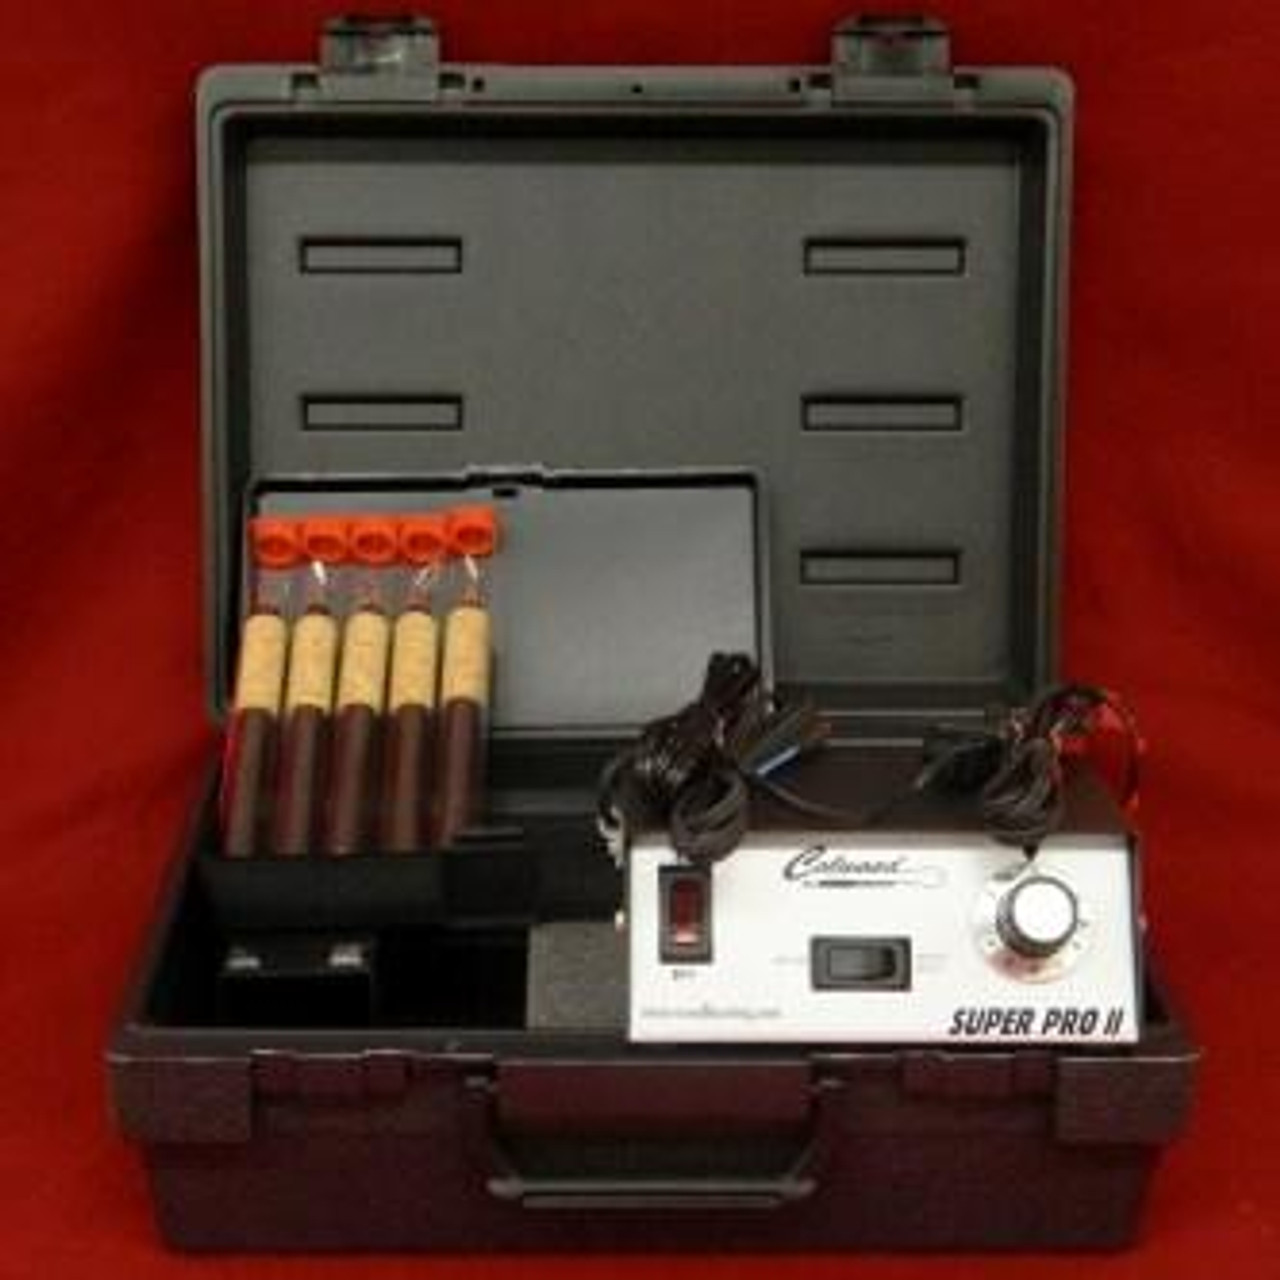 Colwood Super Pro II Standard Woodburning Kit Replaceable Tip